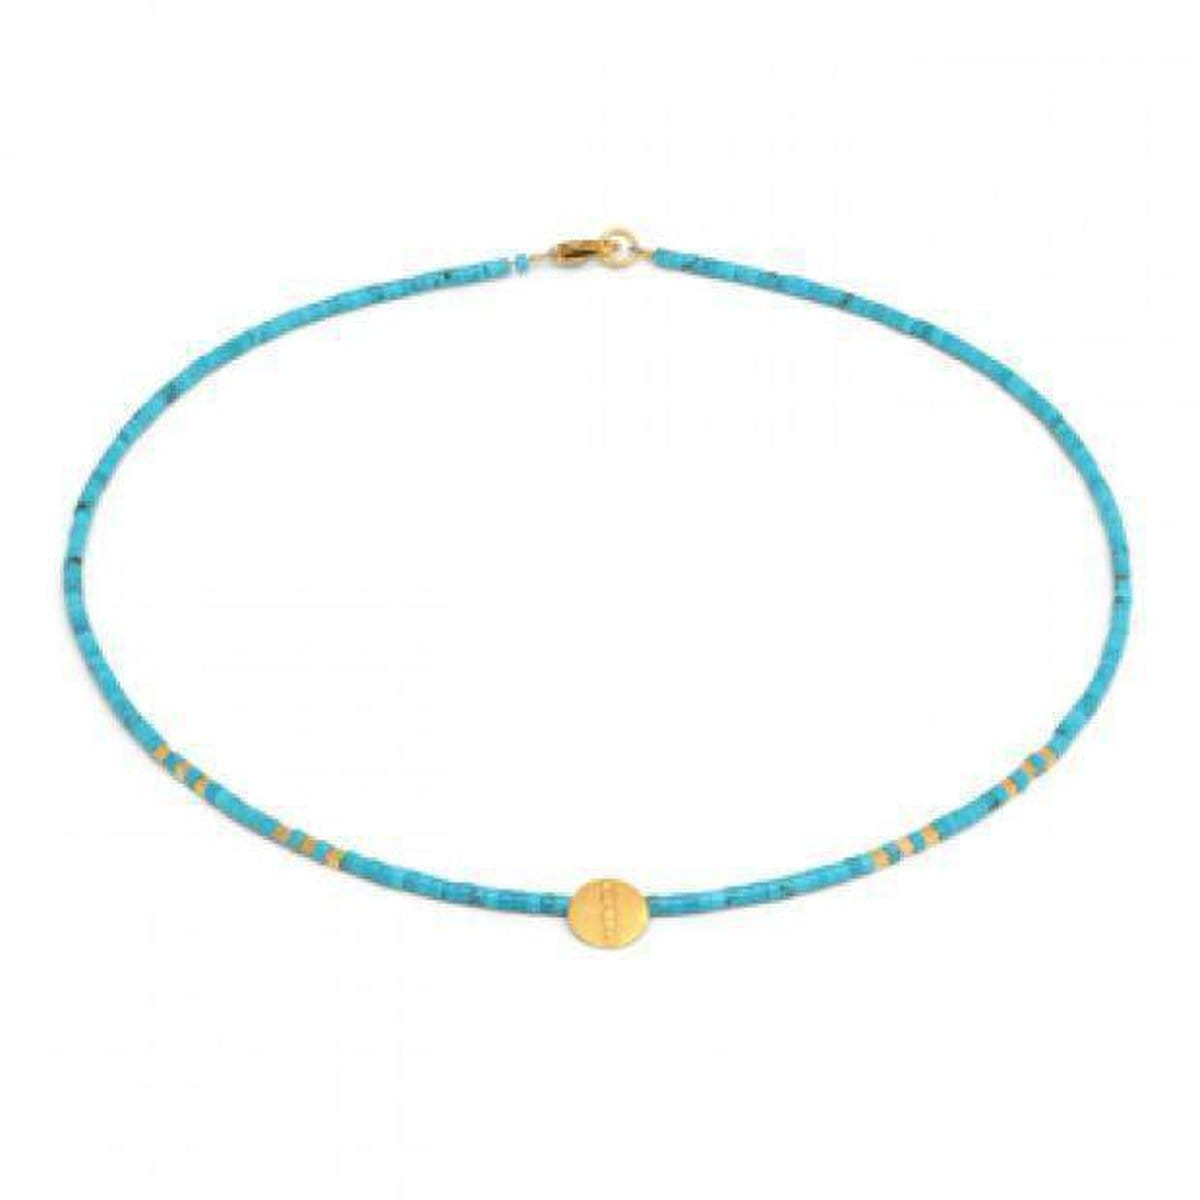 Moscubi Turquoise Necklace - 80922256-Bernd Wolf-Renee Taylor Gallery